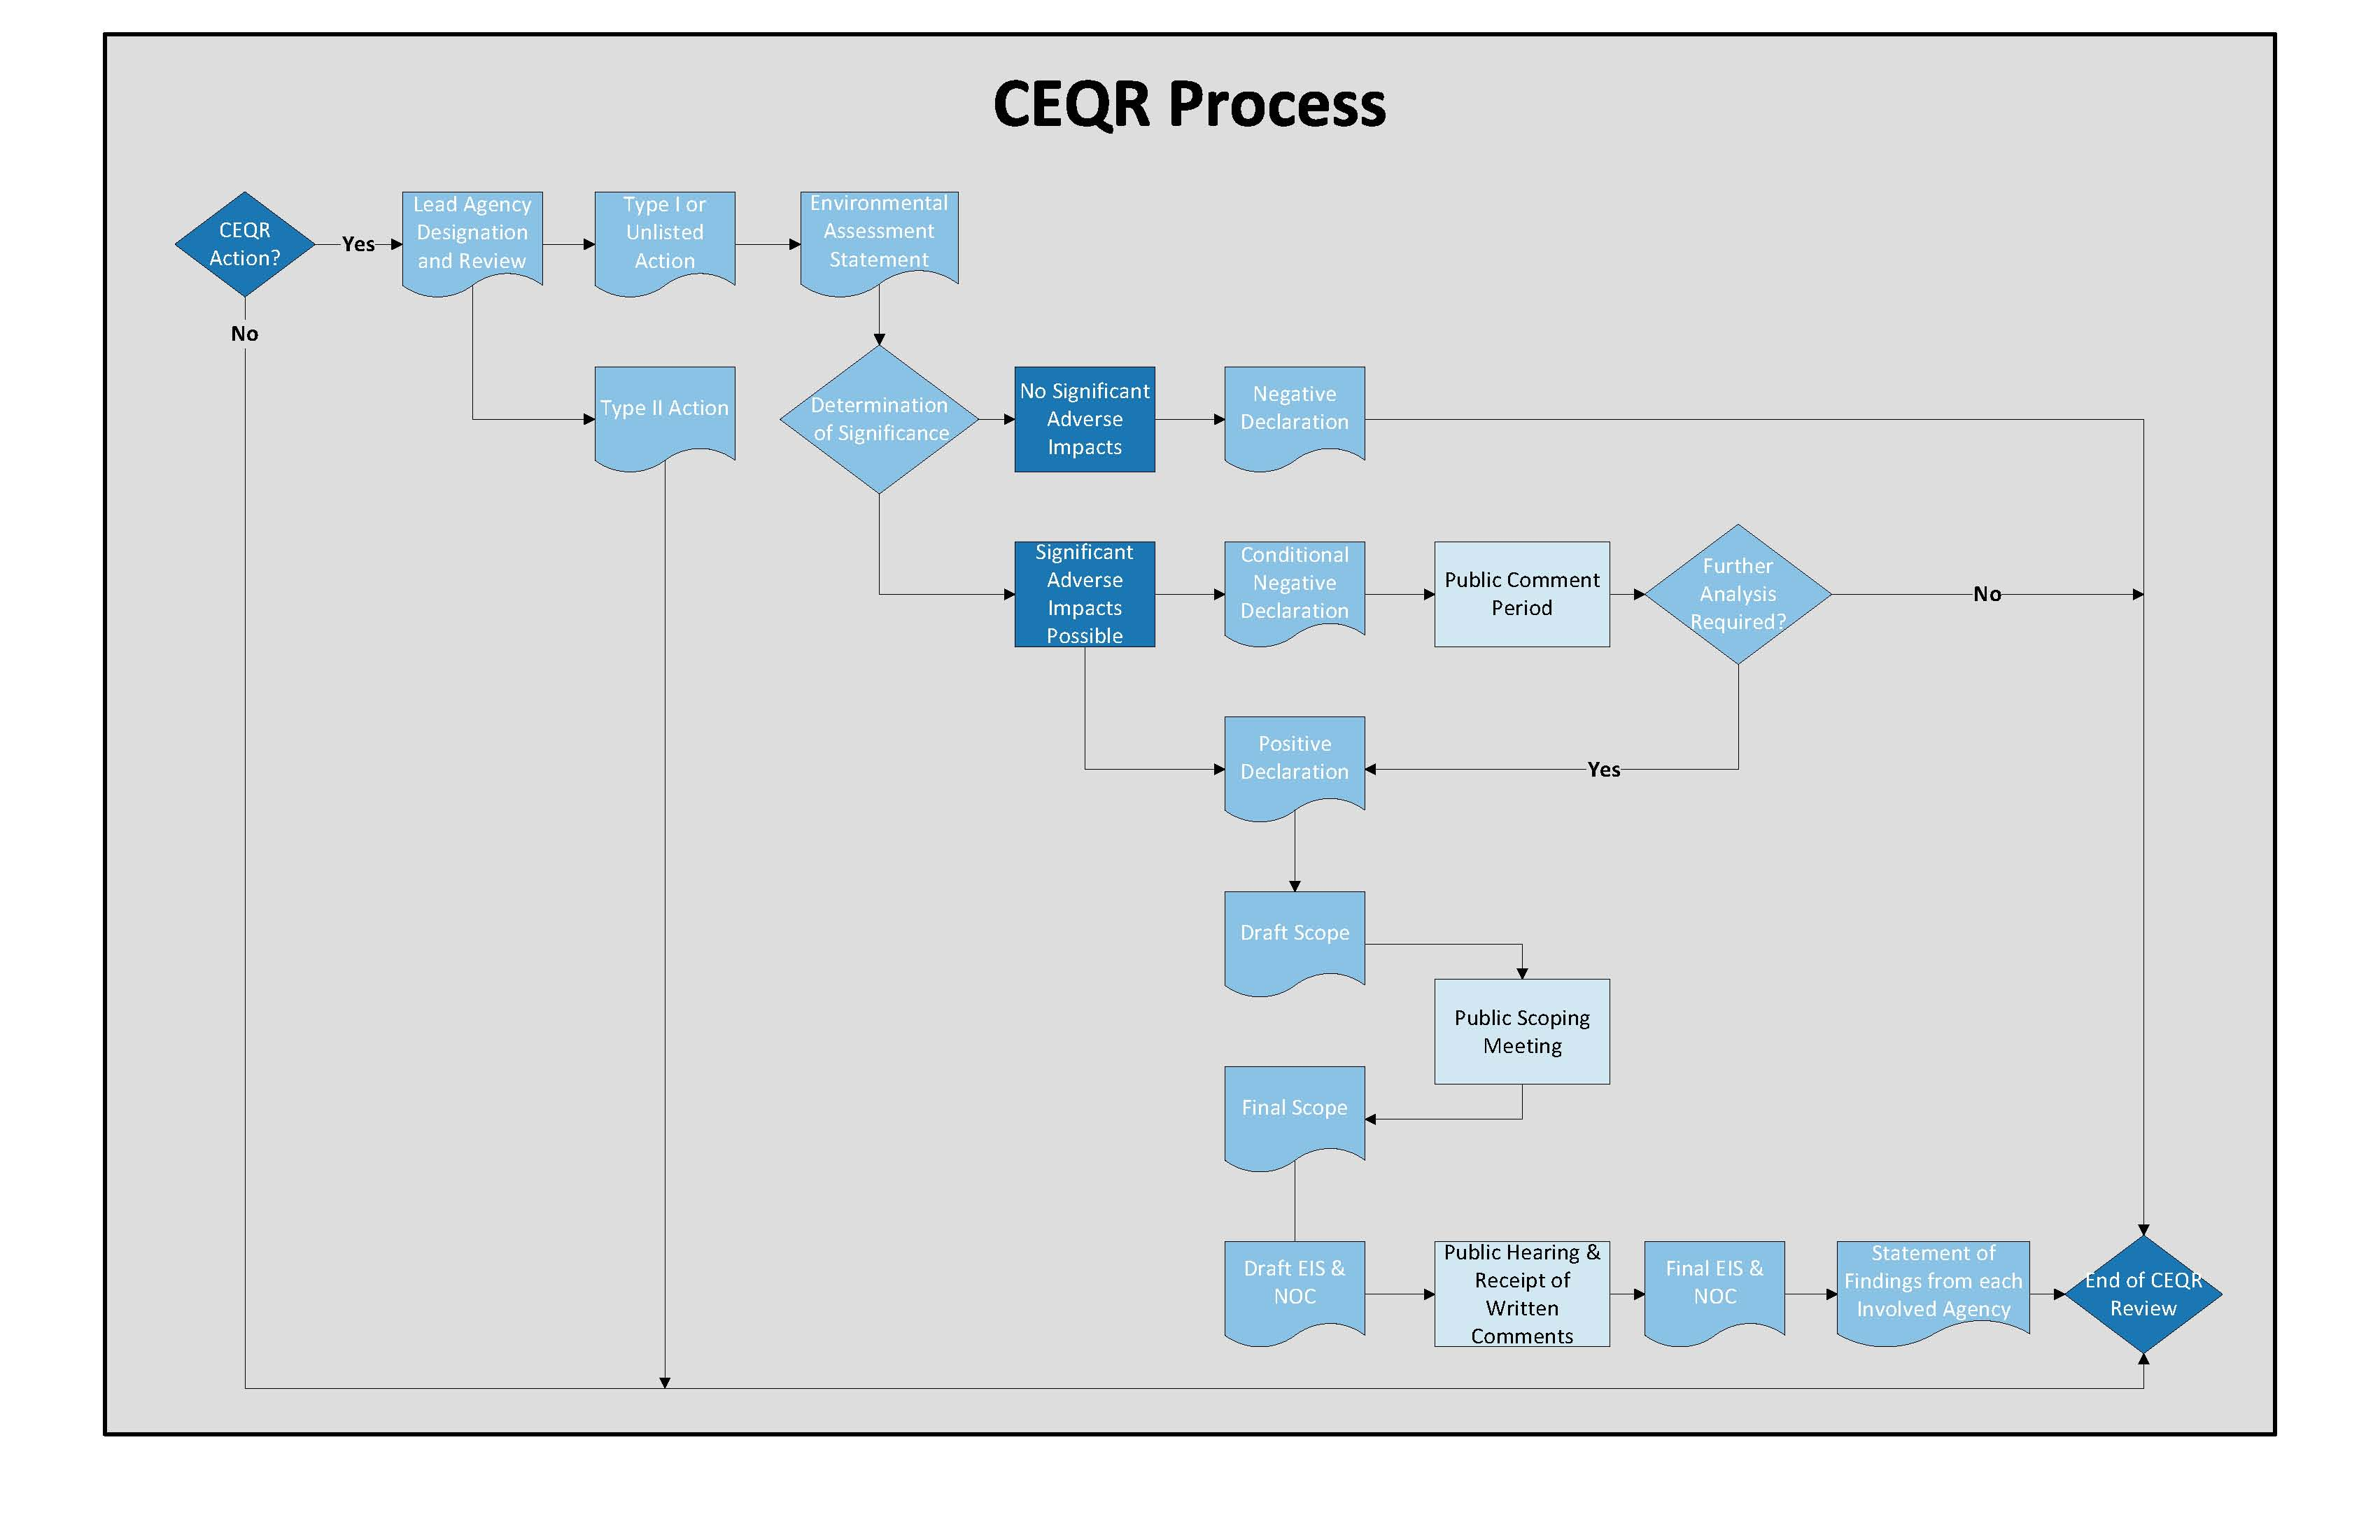 CEQR Process Diagram